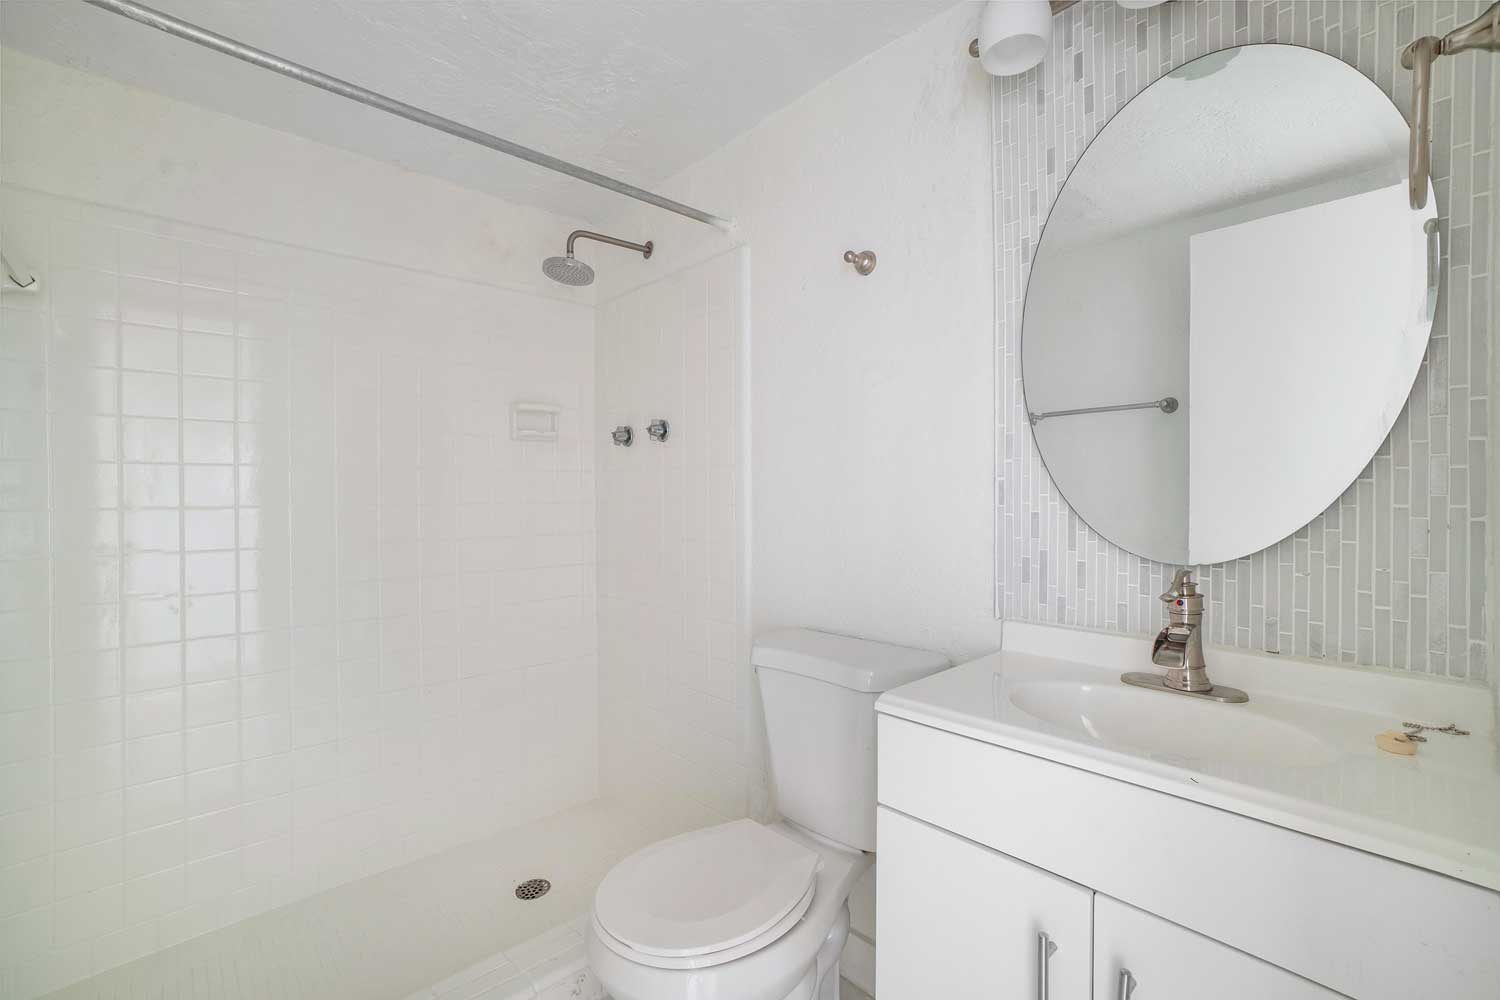 Bathroom with Shower at New Castle Lake Apartments in Miami, FL